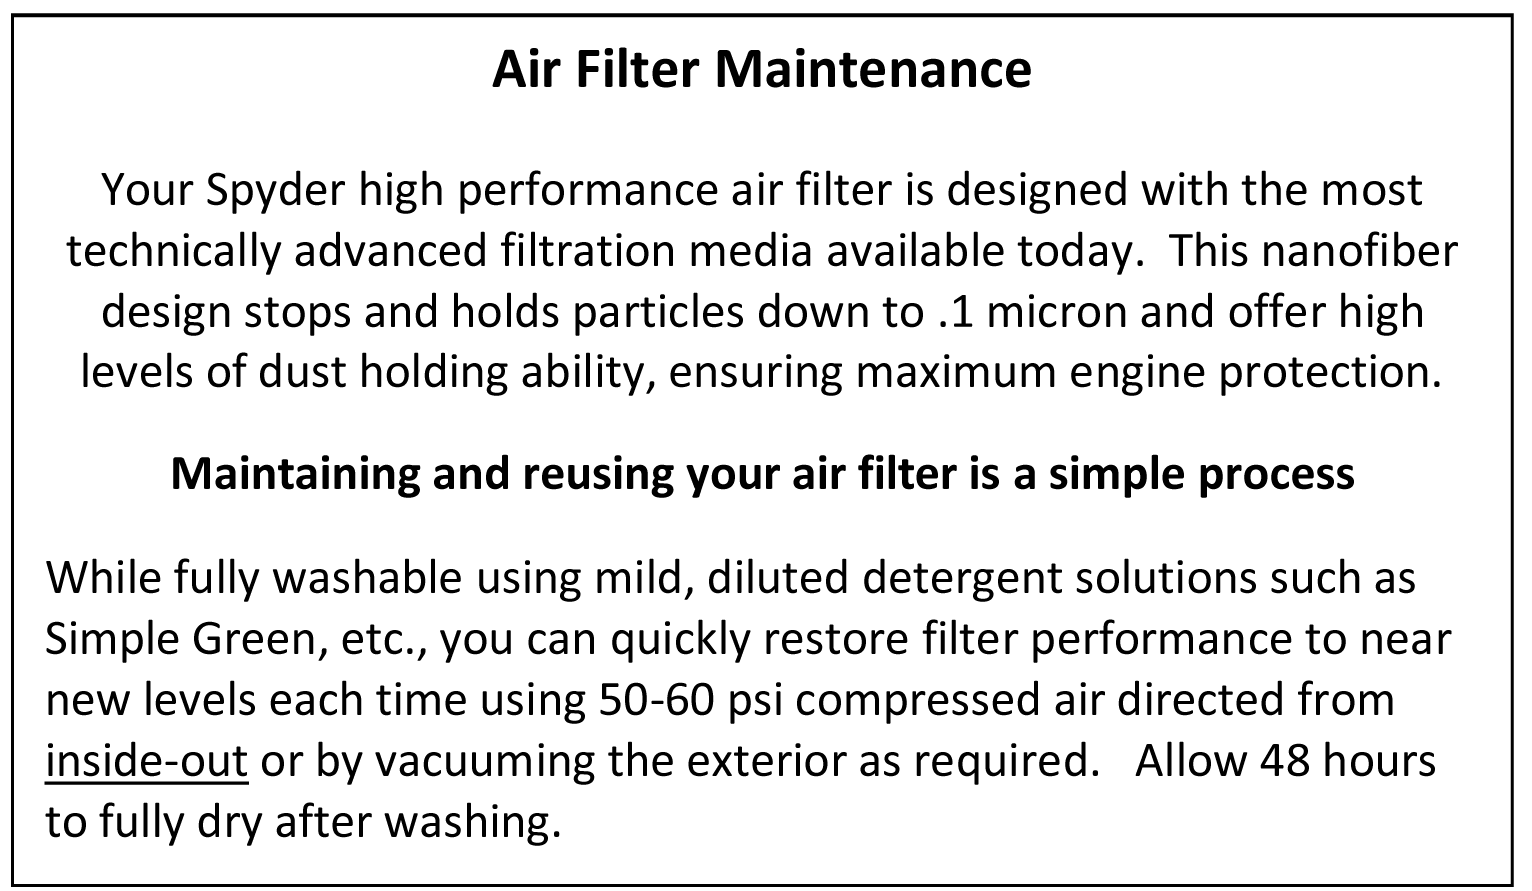 Spyder Filter cleaning instructions